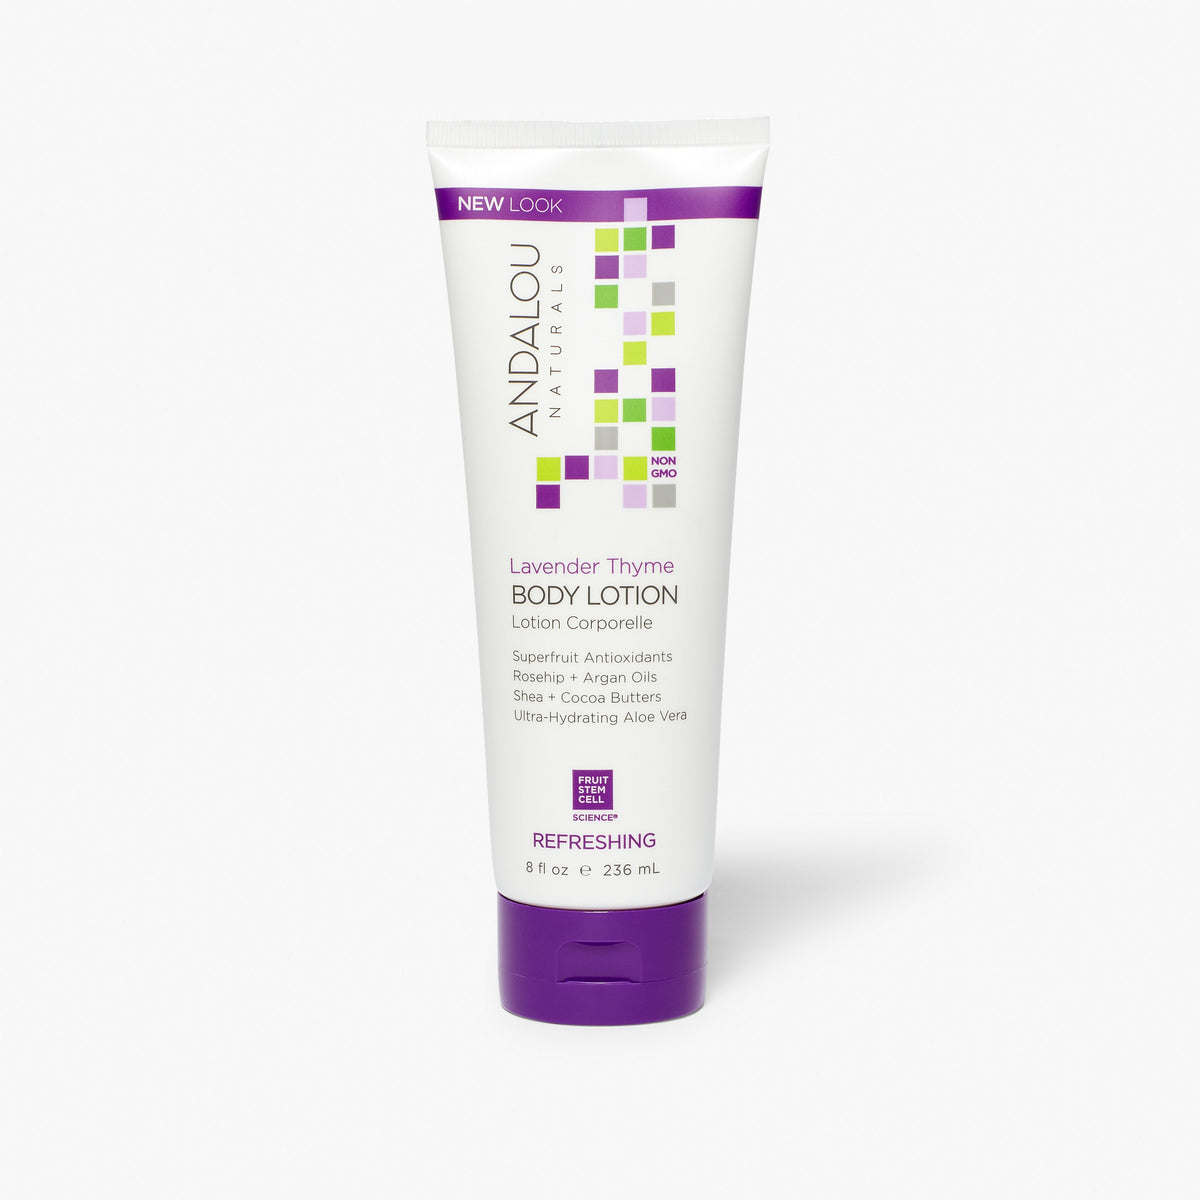 Lavender Thyme Refreshing Body Lotion - Andalou Naturals US